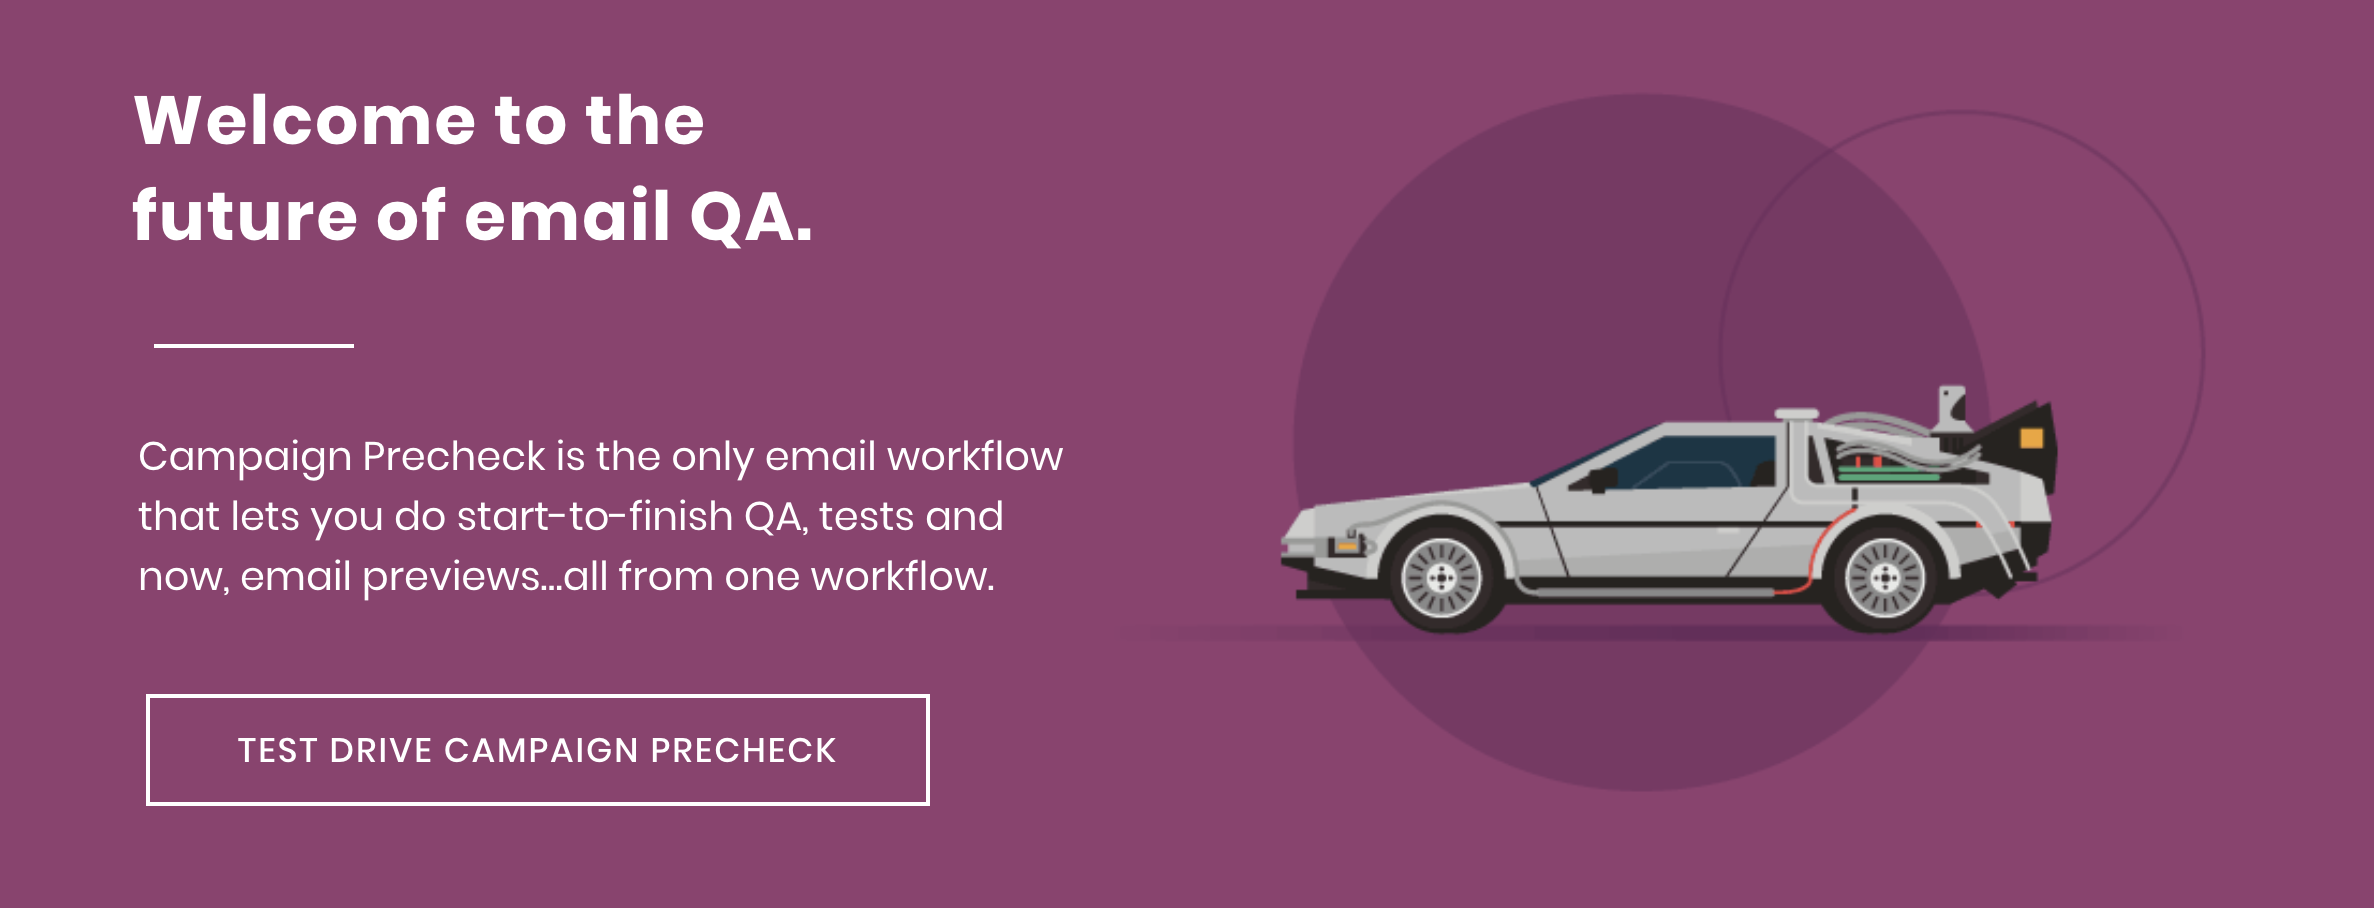 headline copy: Welcome to the future of email QA.